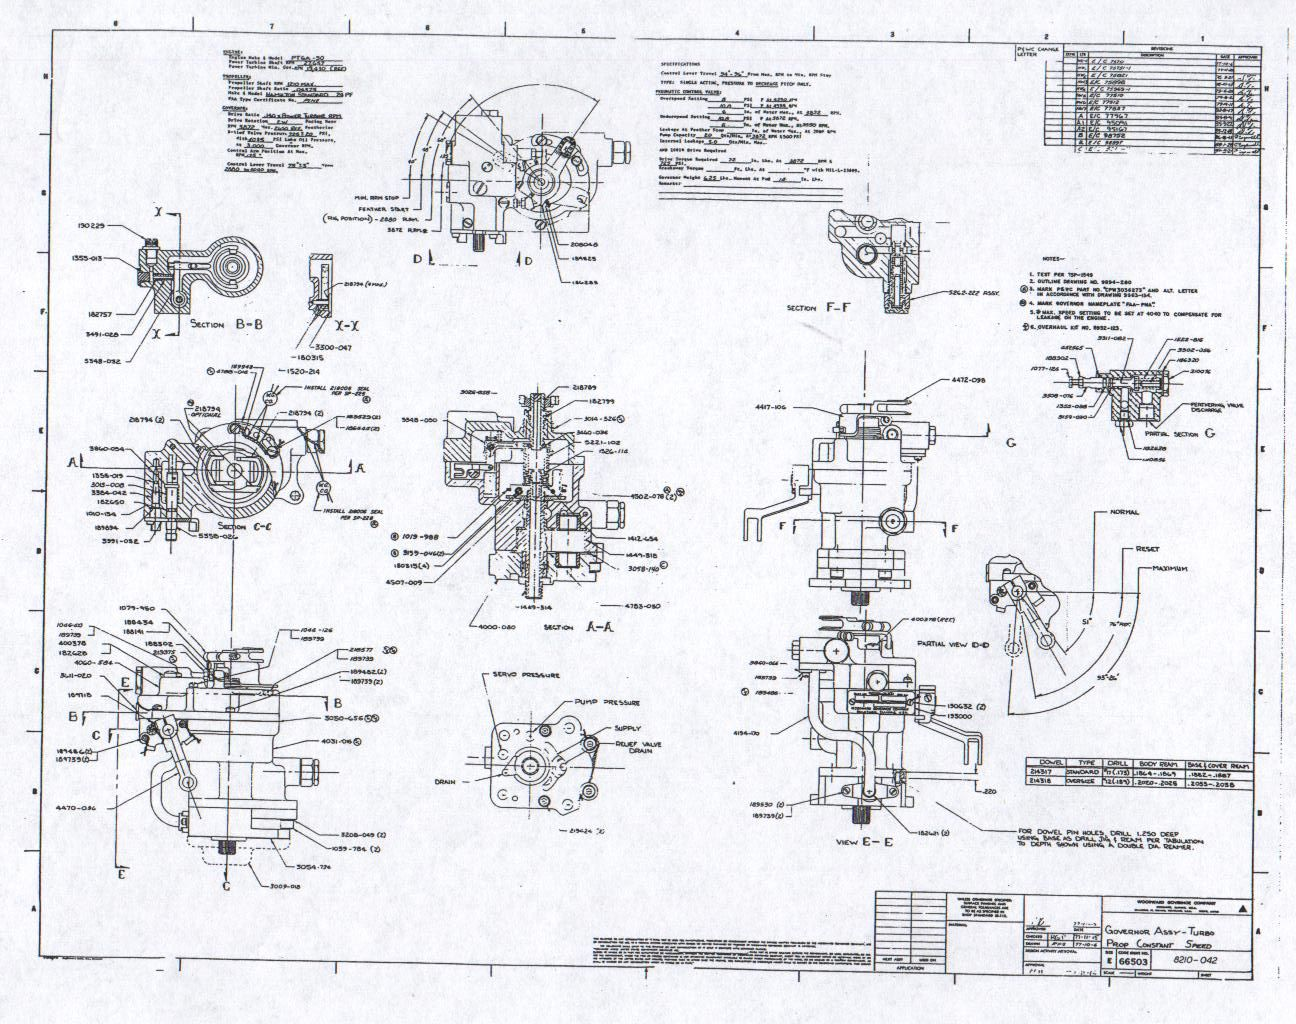 hight resolution of woodward aircraft propeller governor schematic drawing woodward governor aircraft propeller operations management